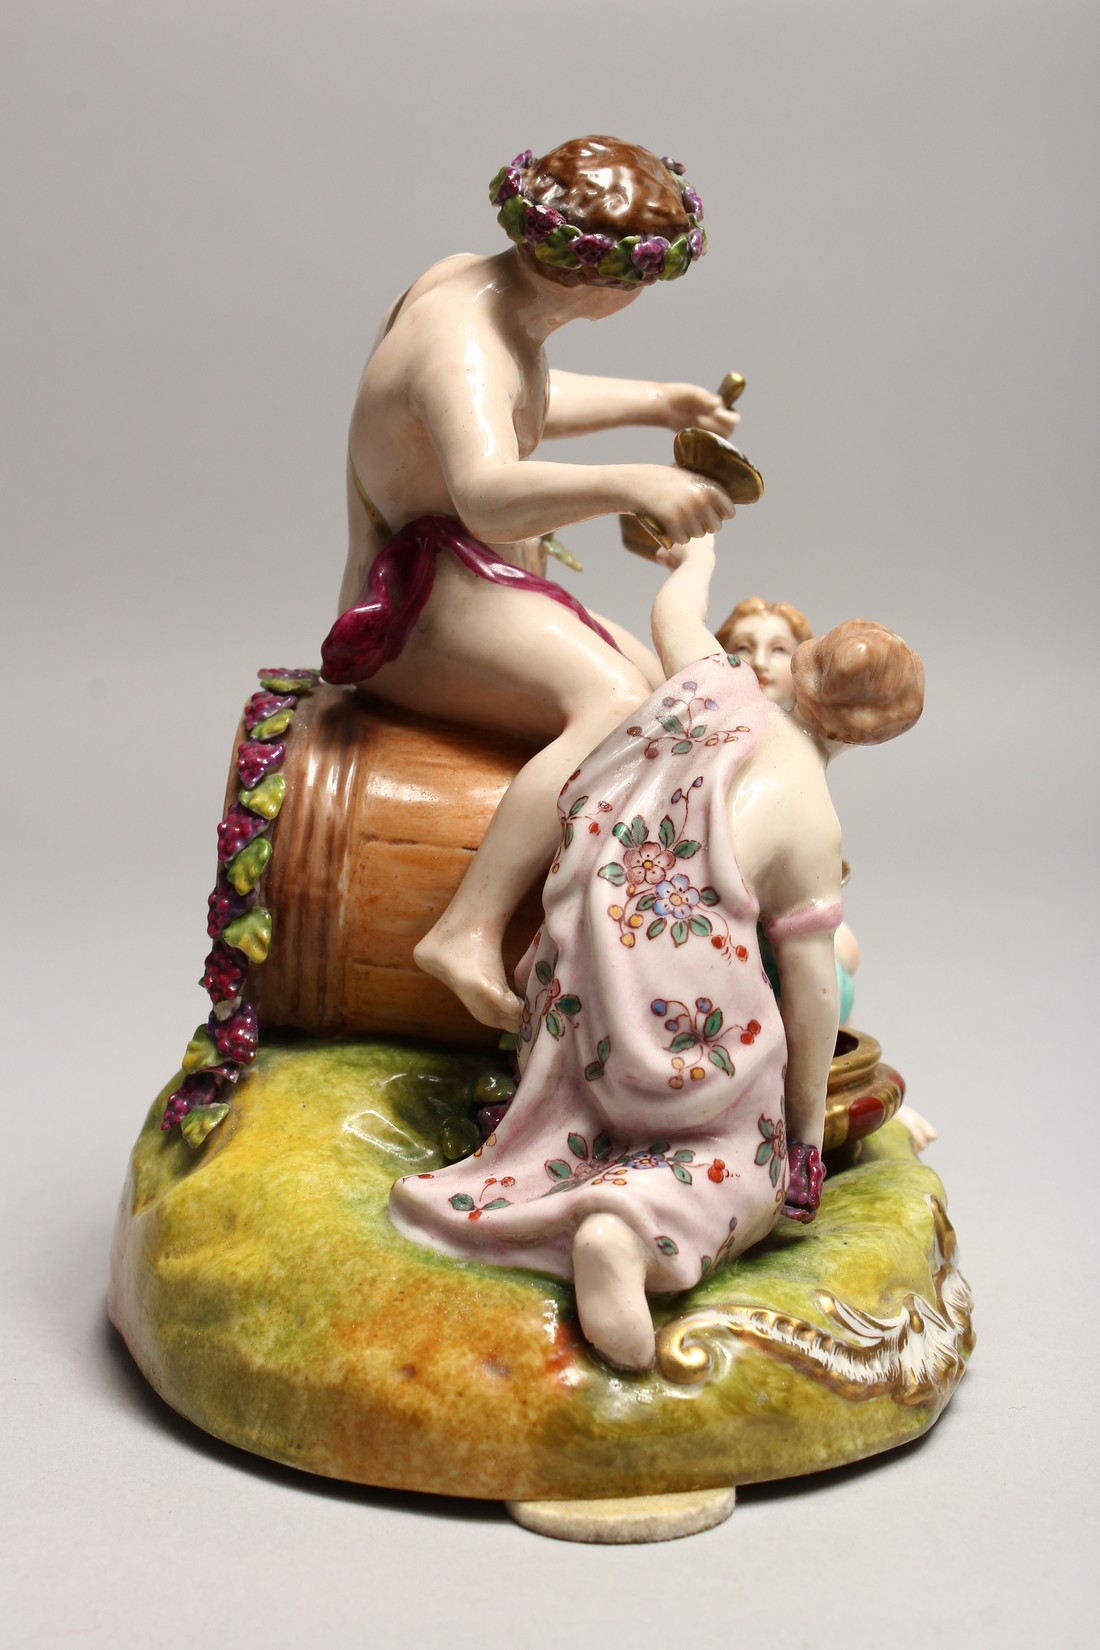 A GOOD 19TH CENTURY CONTINENTAL POTTERY GROUP depicting the grape harvest, one sitting on a - Image 6 of 7